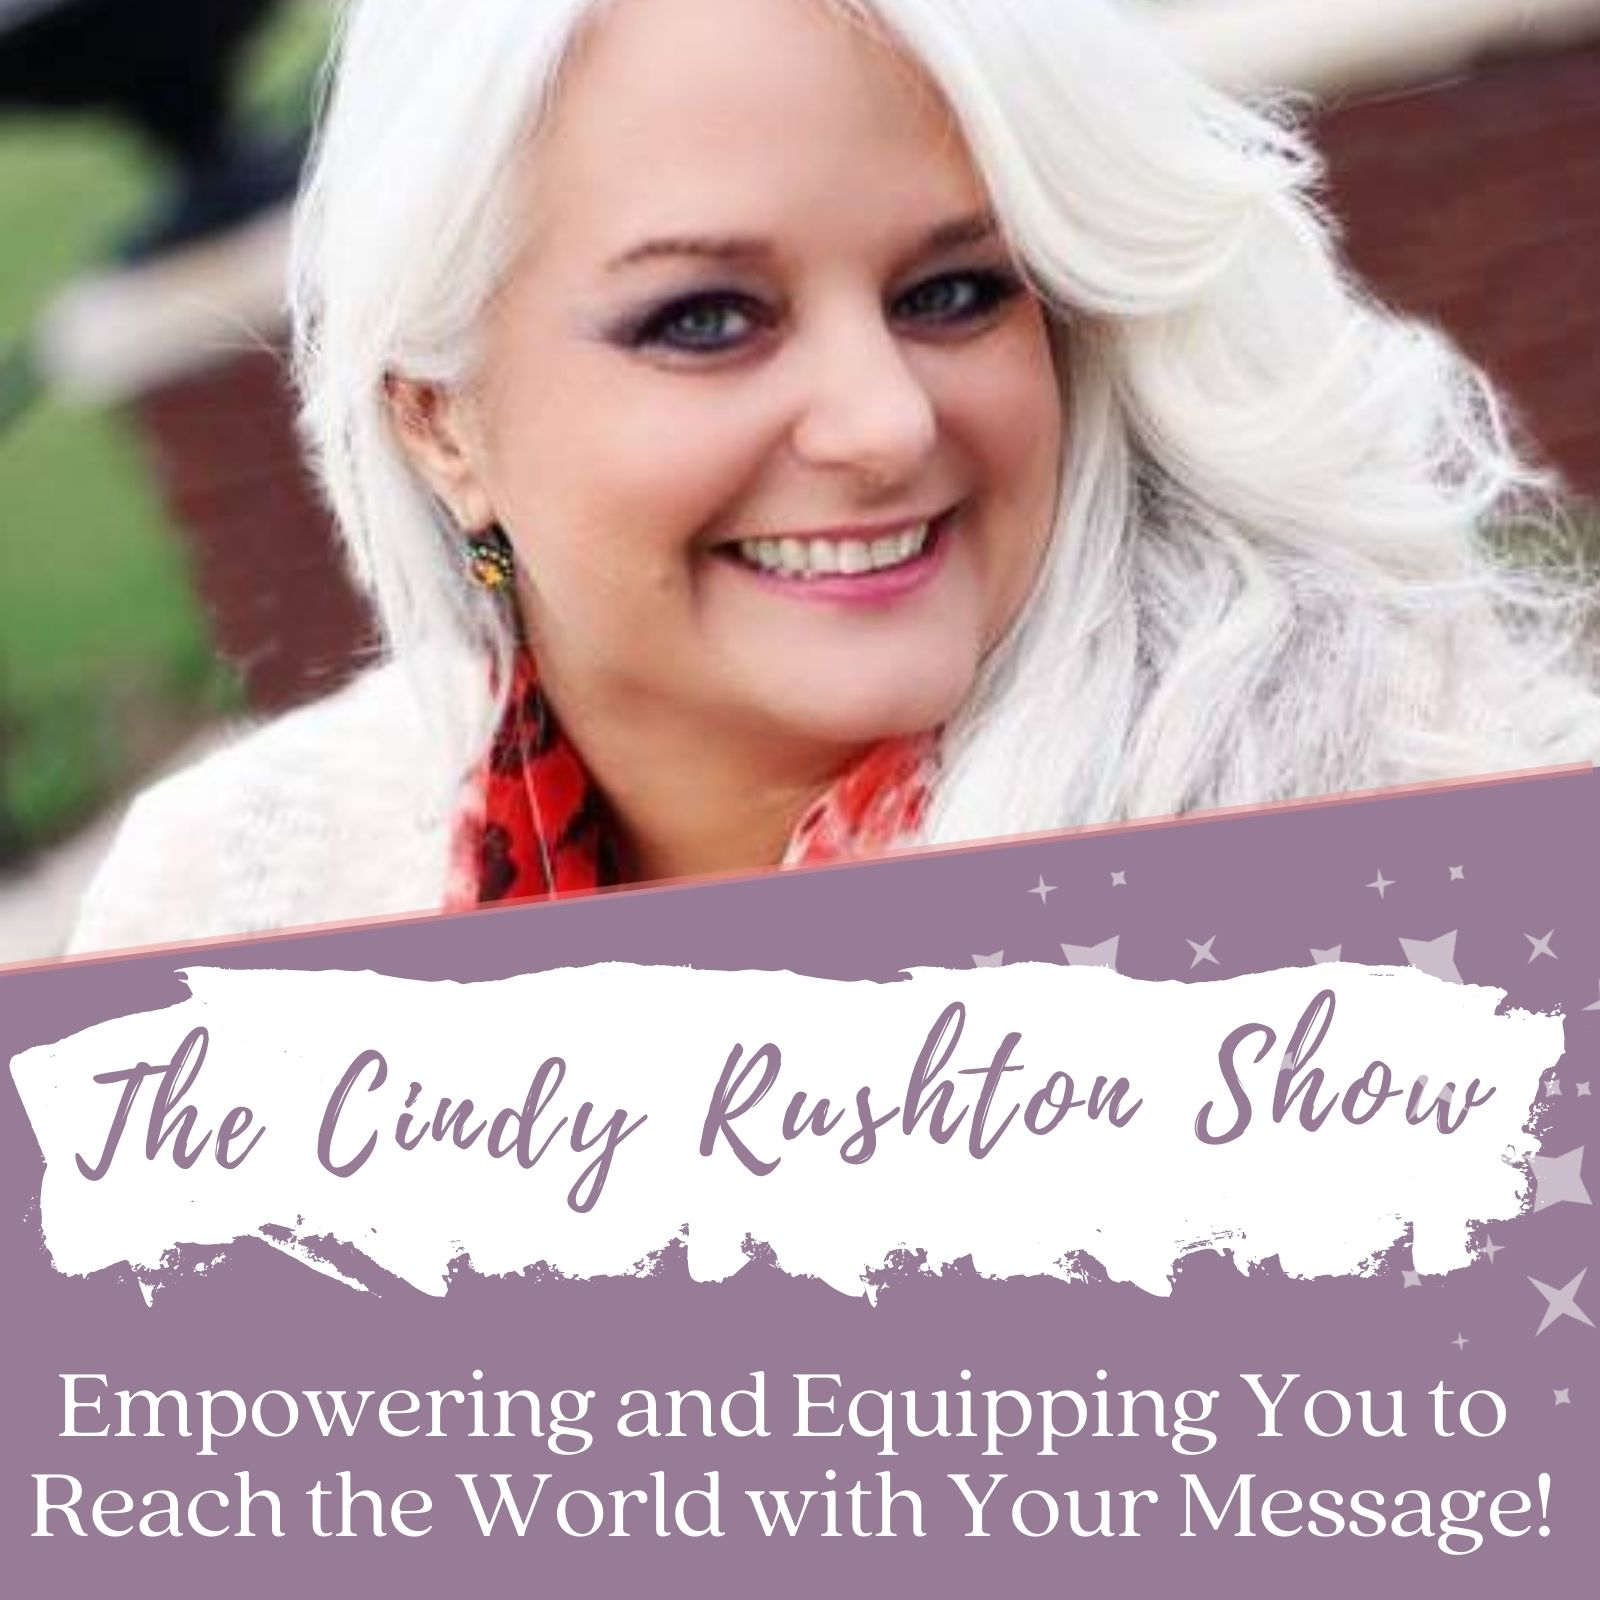 The Cindy Rushton Show